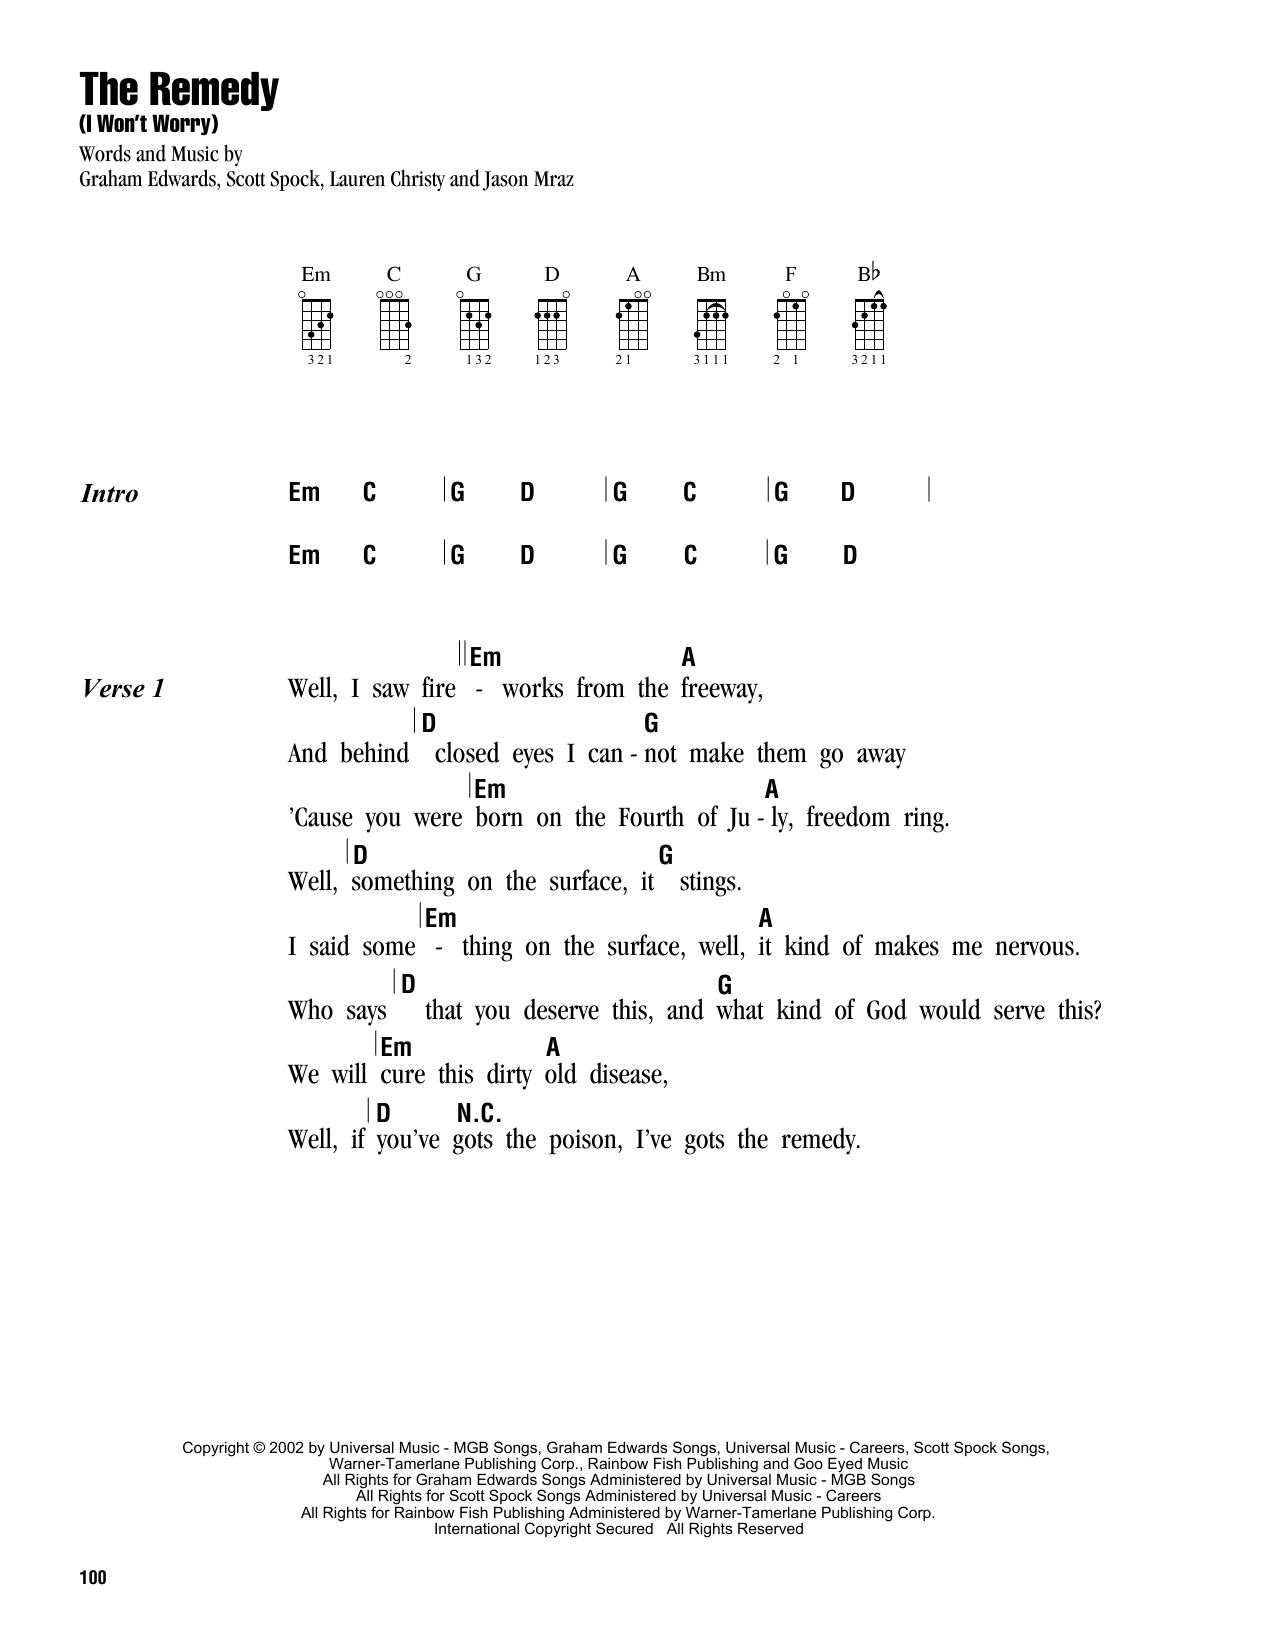 Tablature guitare The Remedy (I Won't Worry) de Jason Mraz - Ukulele (strumming patterns)